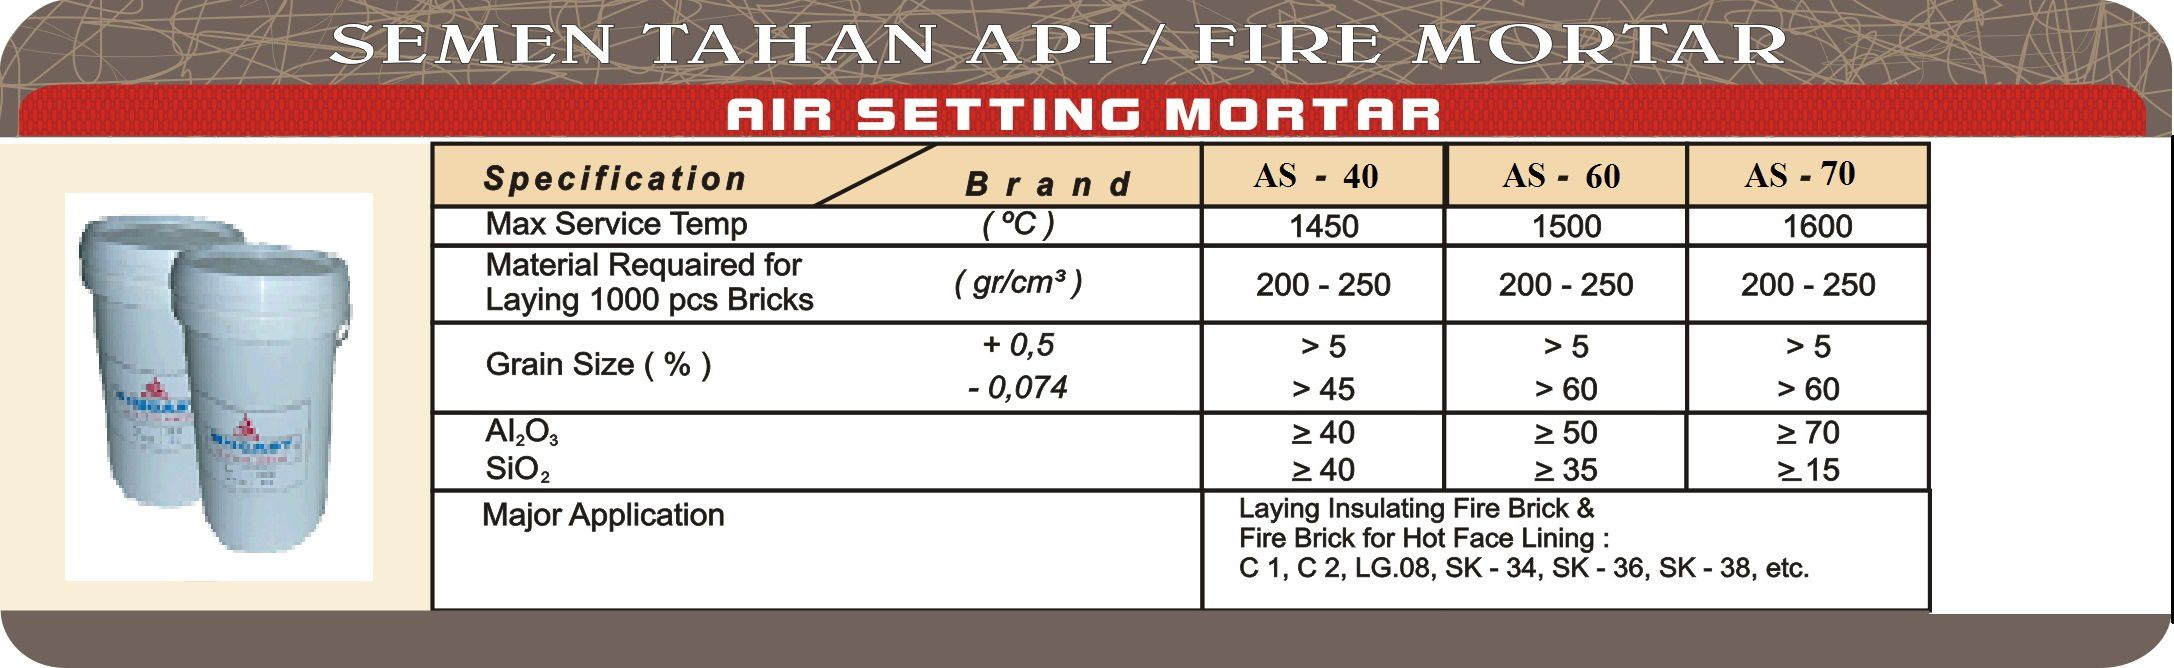 Air Setting Mortar